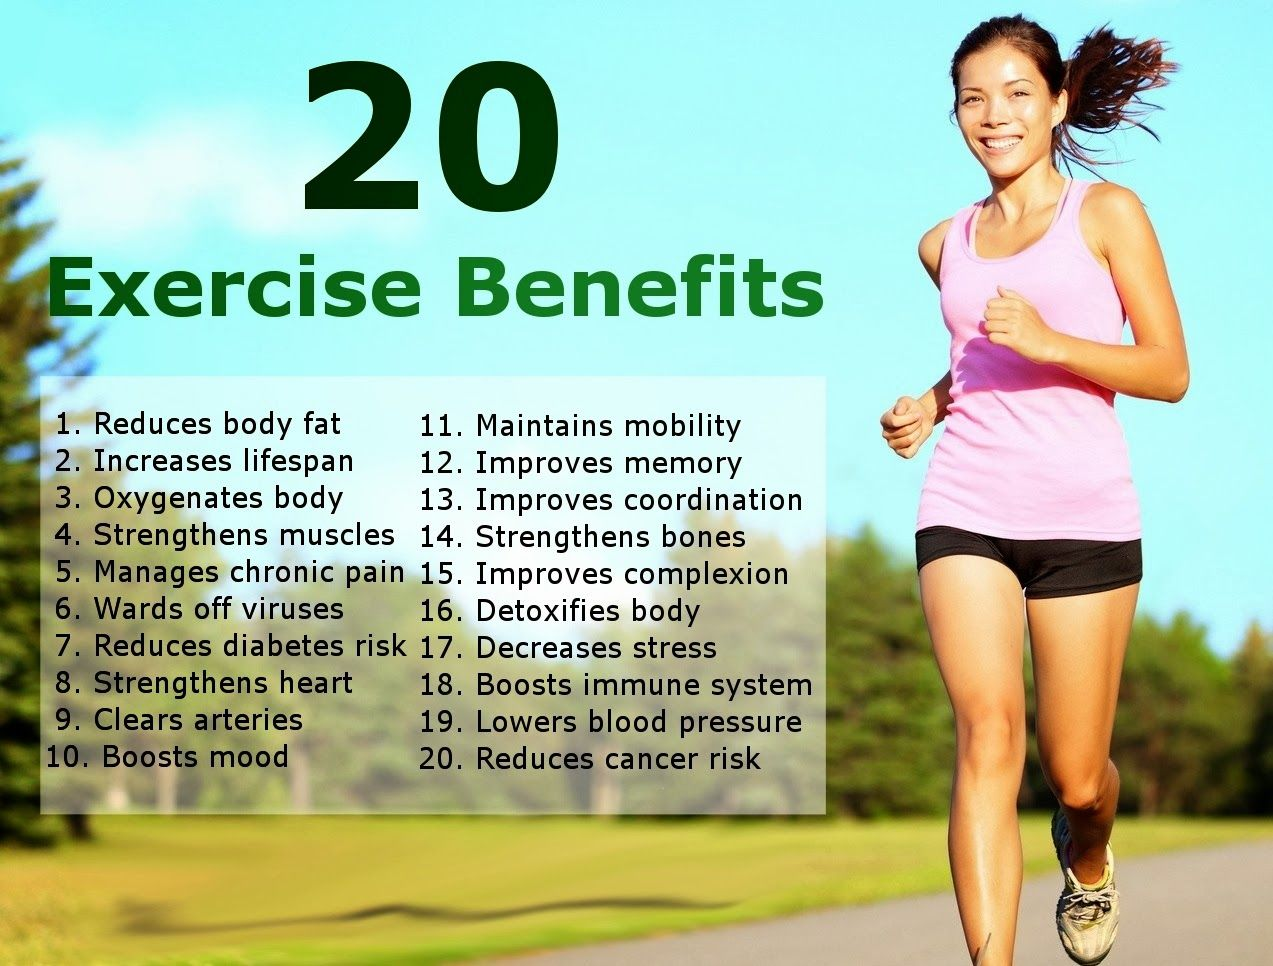 29 best images about Stay Healthy, Stay Fit! on Pinterest ...